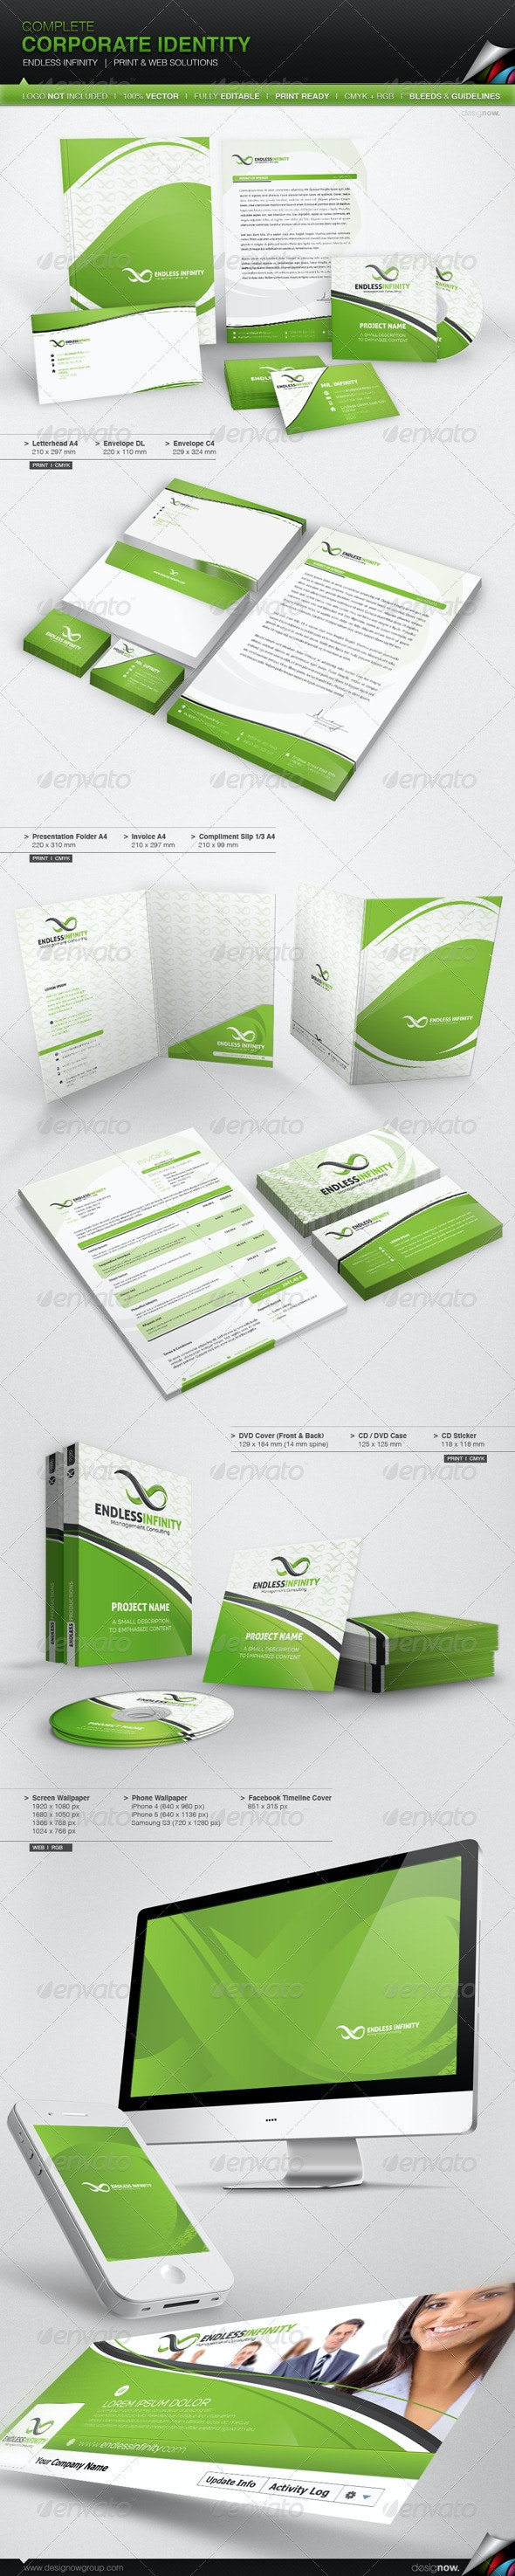 Corporate Identity - Endless Infinity - Stationery Print Templates